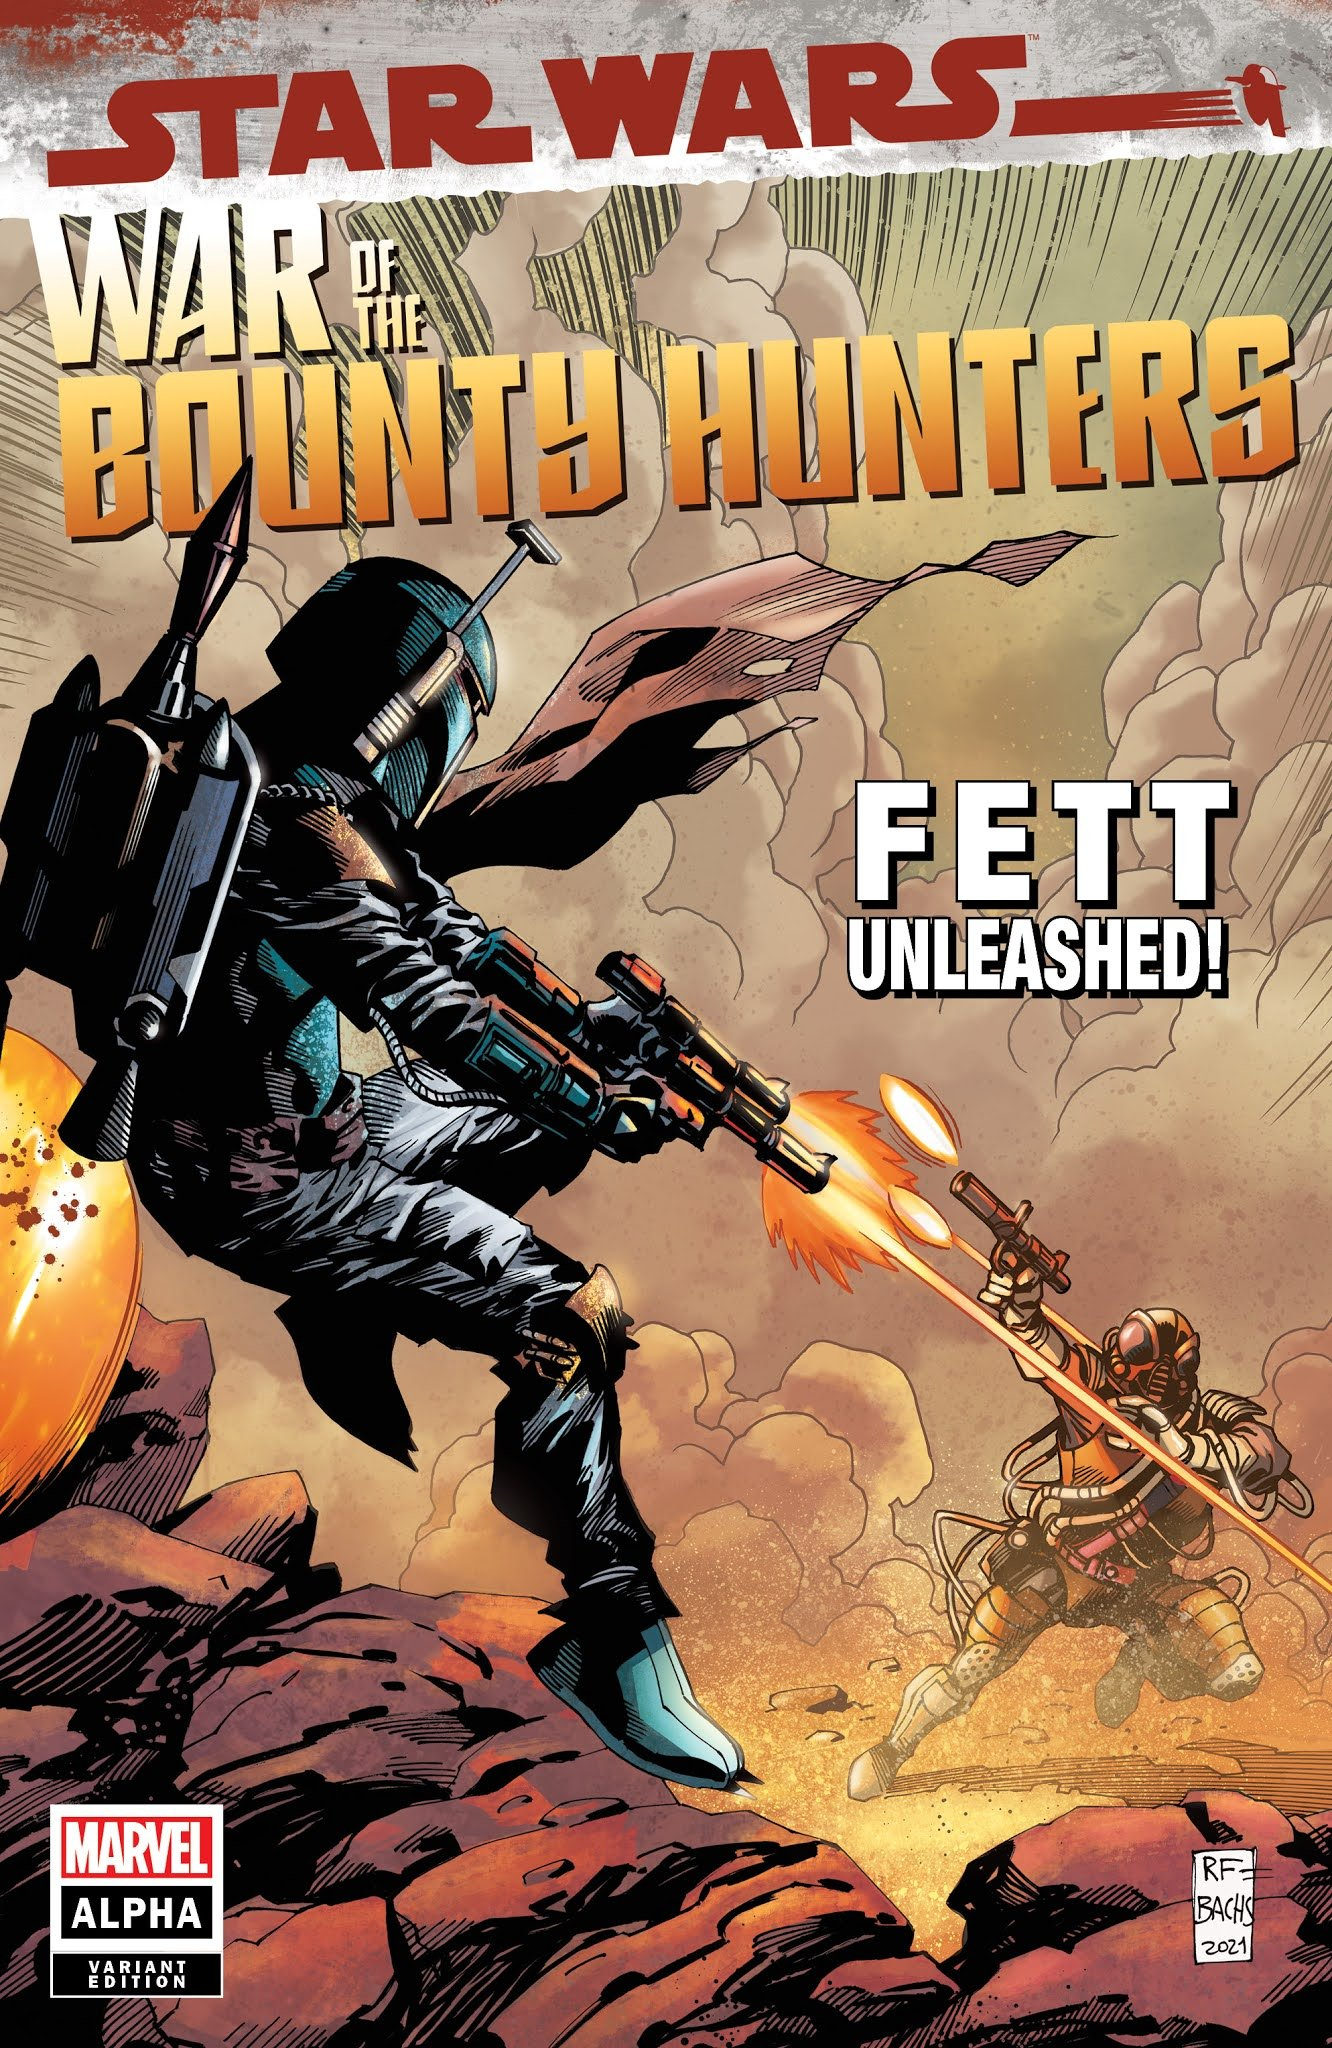 War of the Bounty Hunters Alpha #1 (Ramón F. Bachs Comic Book Exclusives Variant Cover) (05.05.2021)